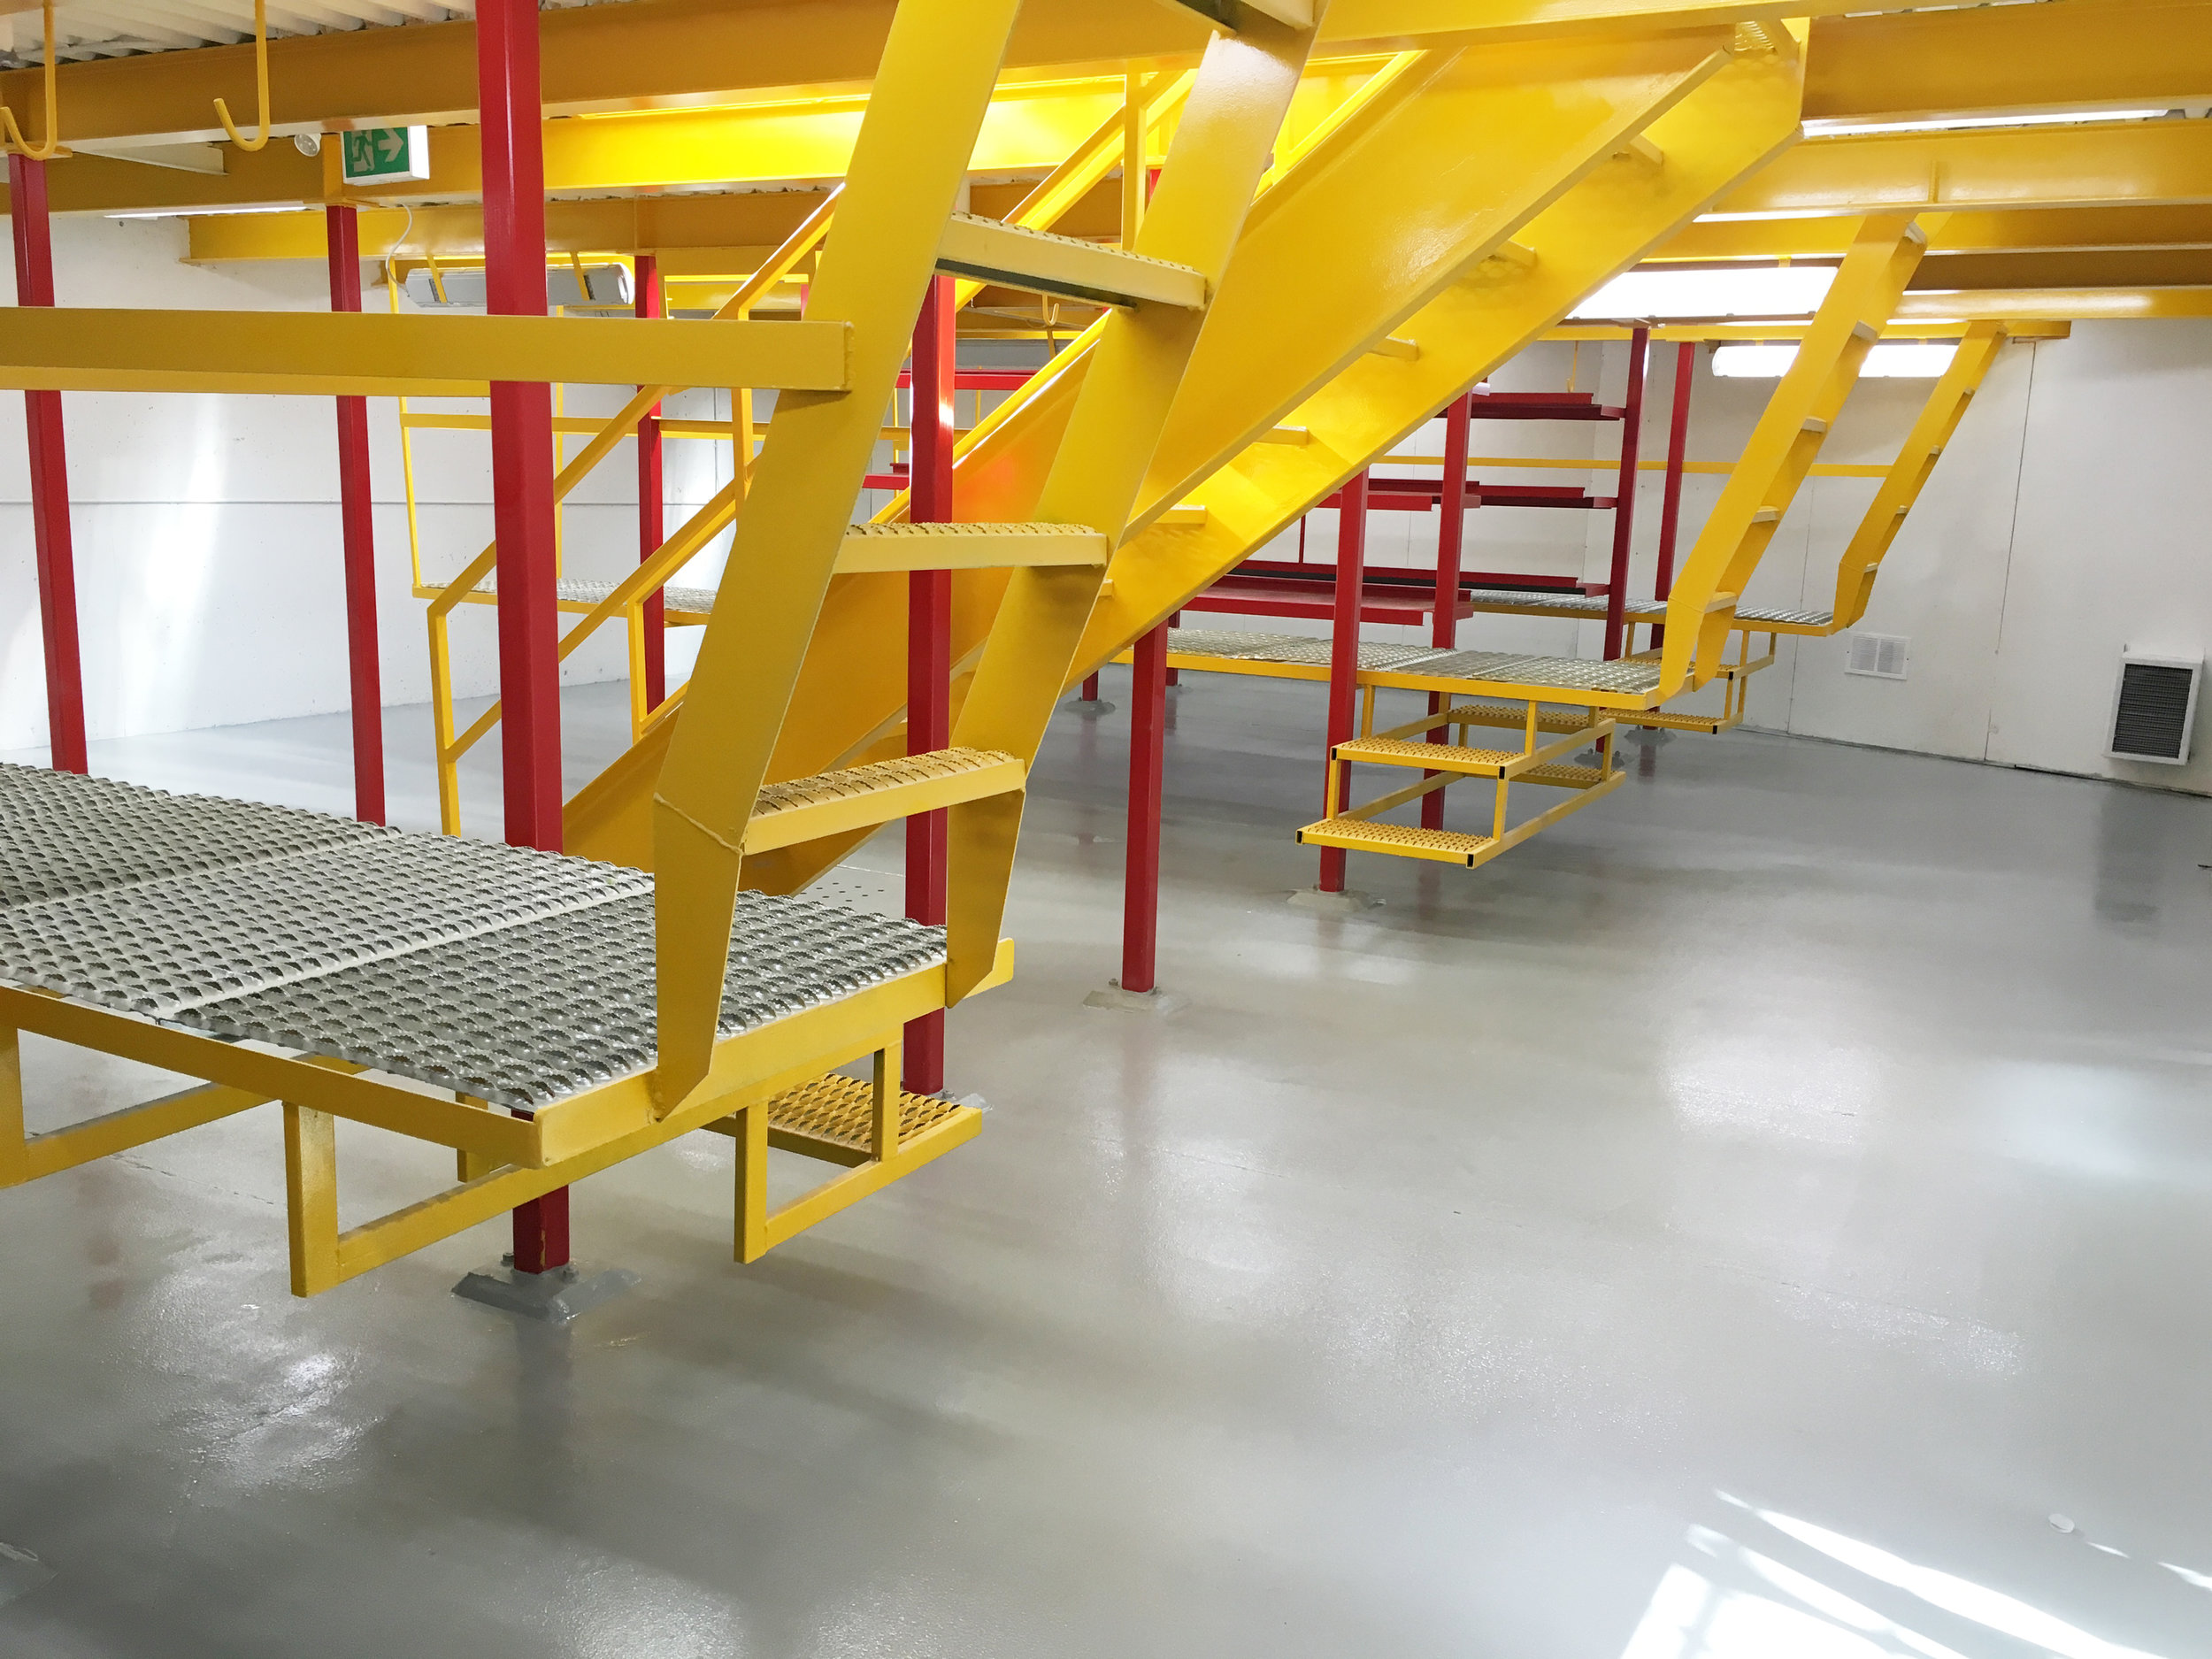 Jiffy Lube - full interior painting and epoxy floor coating